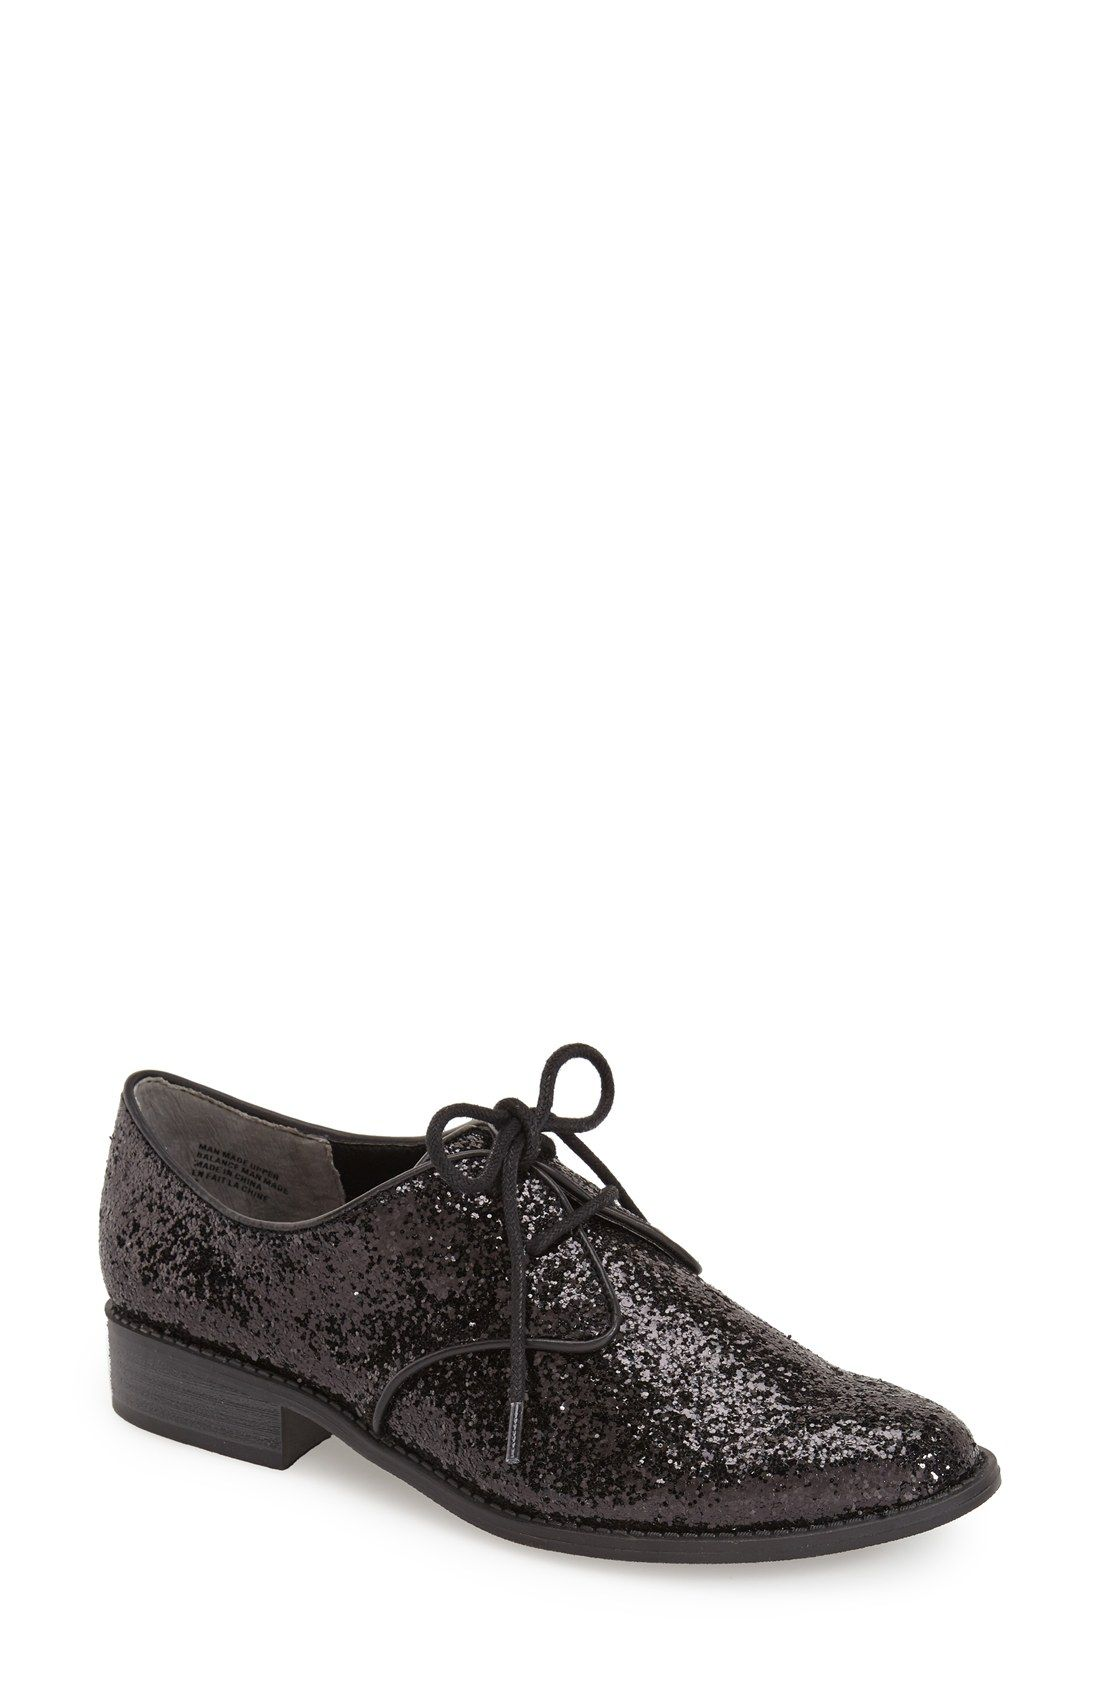 5fed50d4ce6 Seychelles  Welcome Back  Oxford (Women) Oxford Brogues